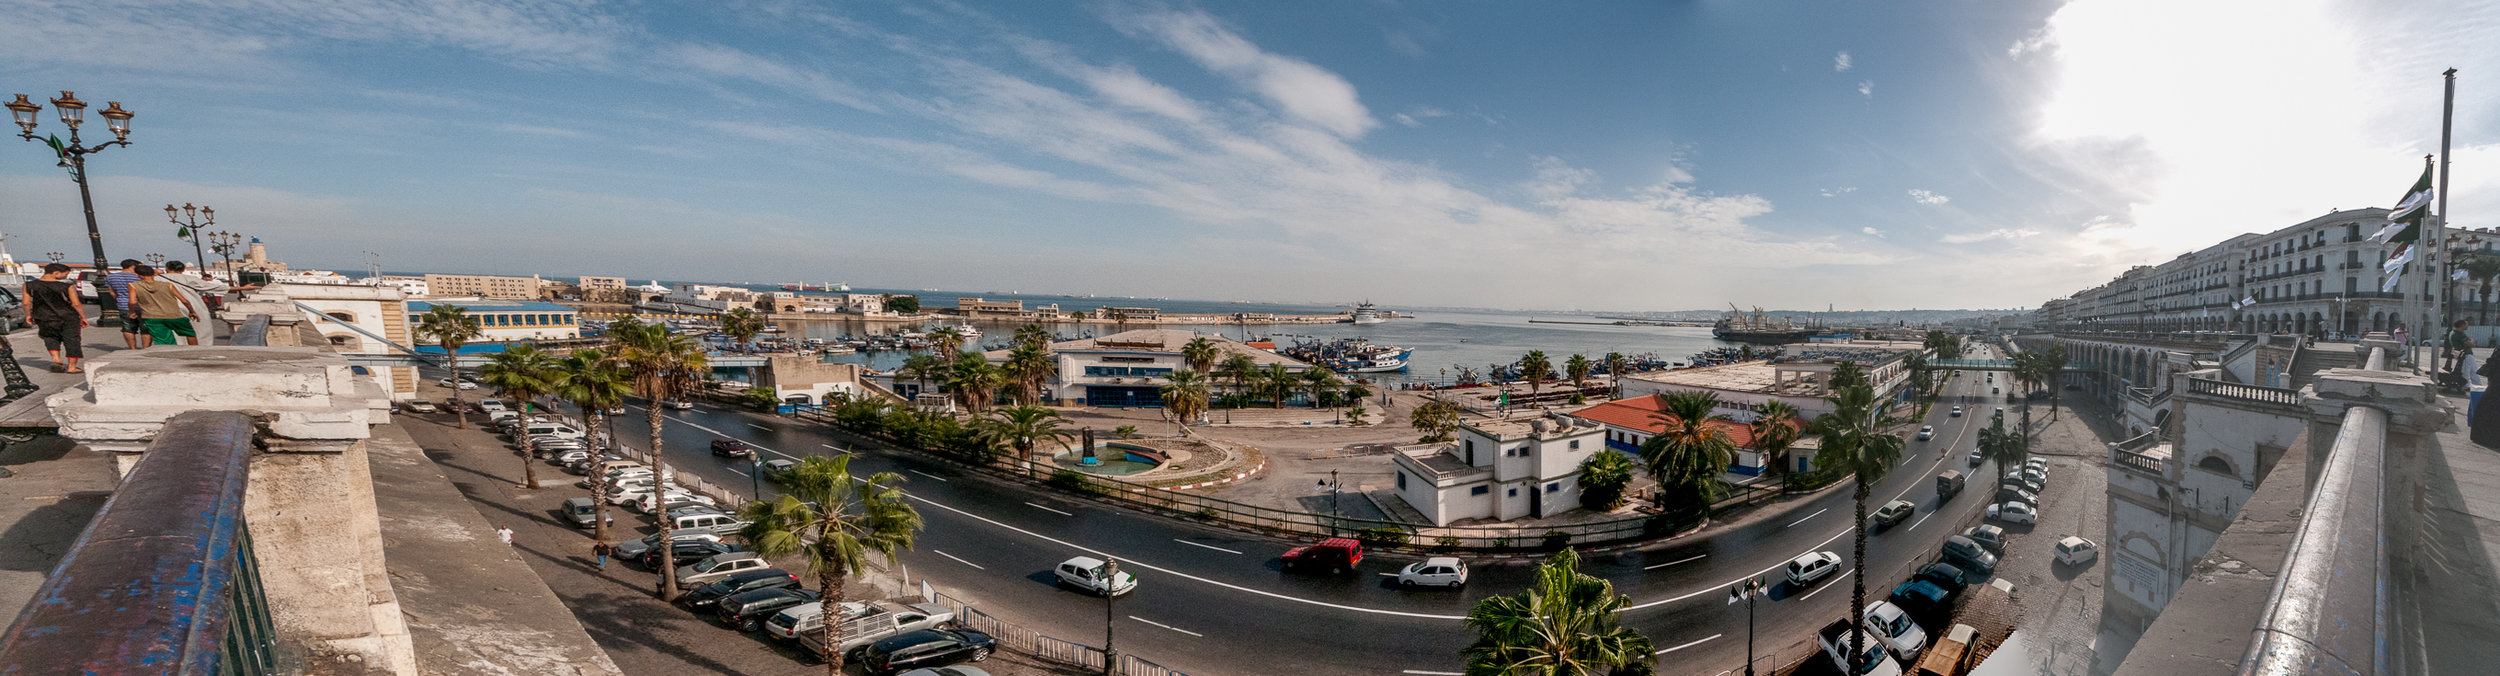 Panoramic of the Algiers waterfront